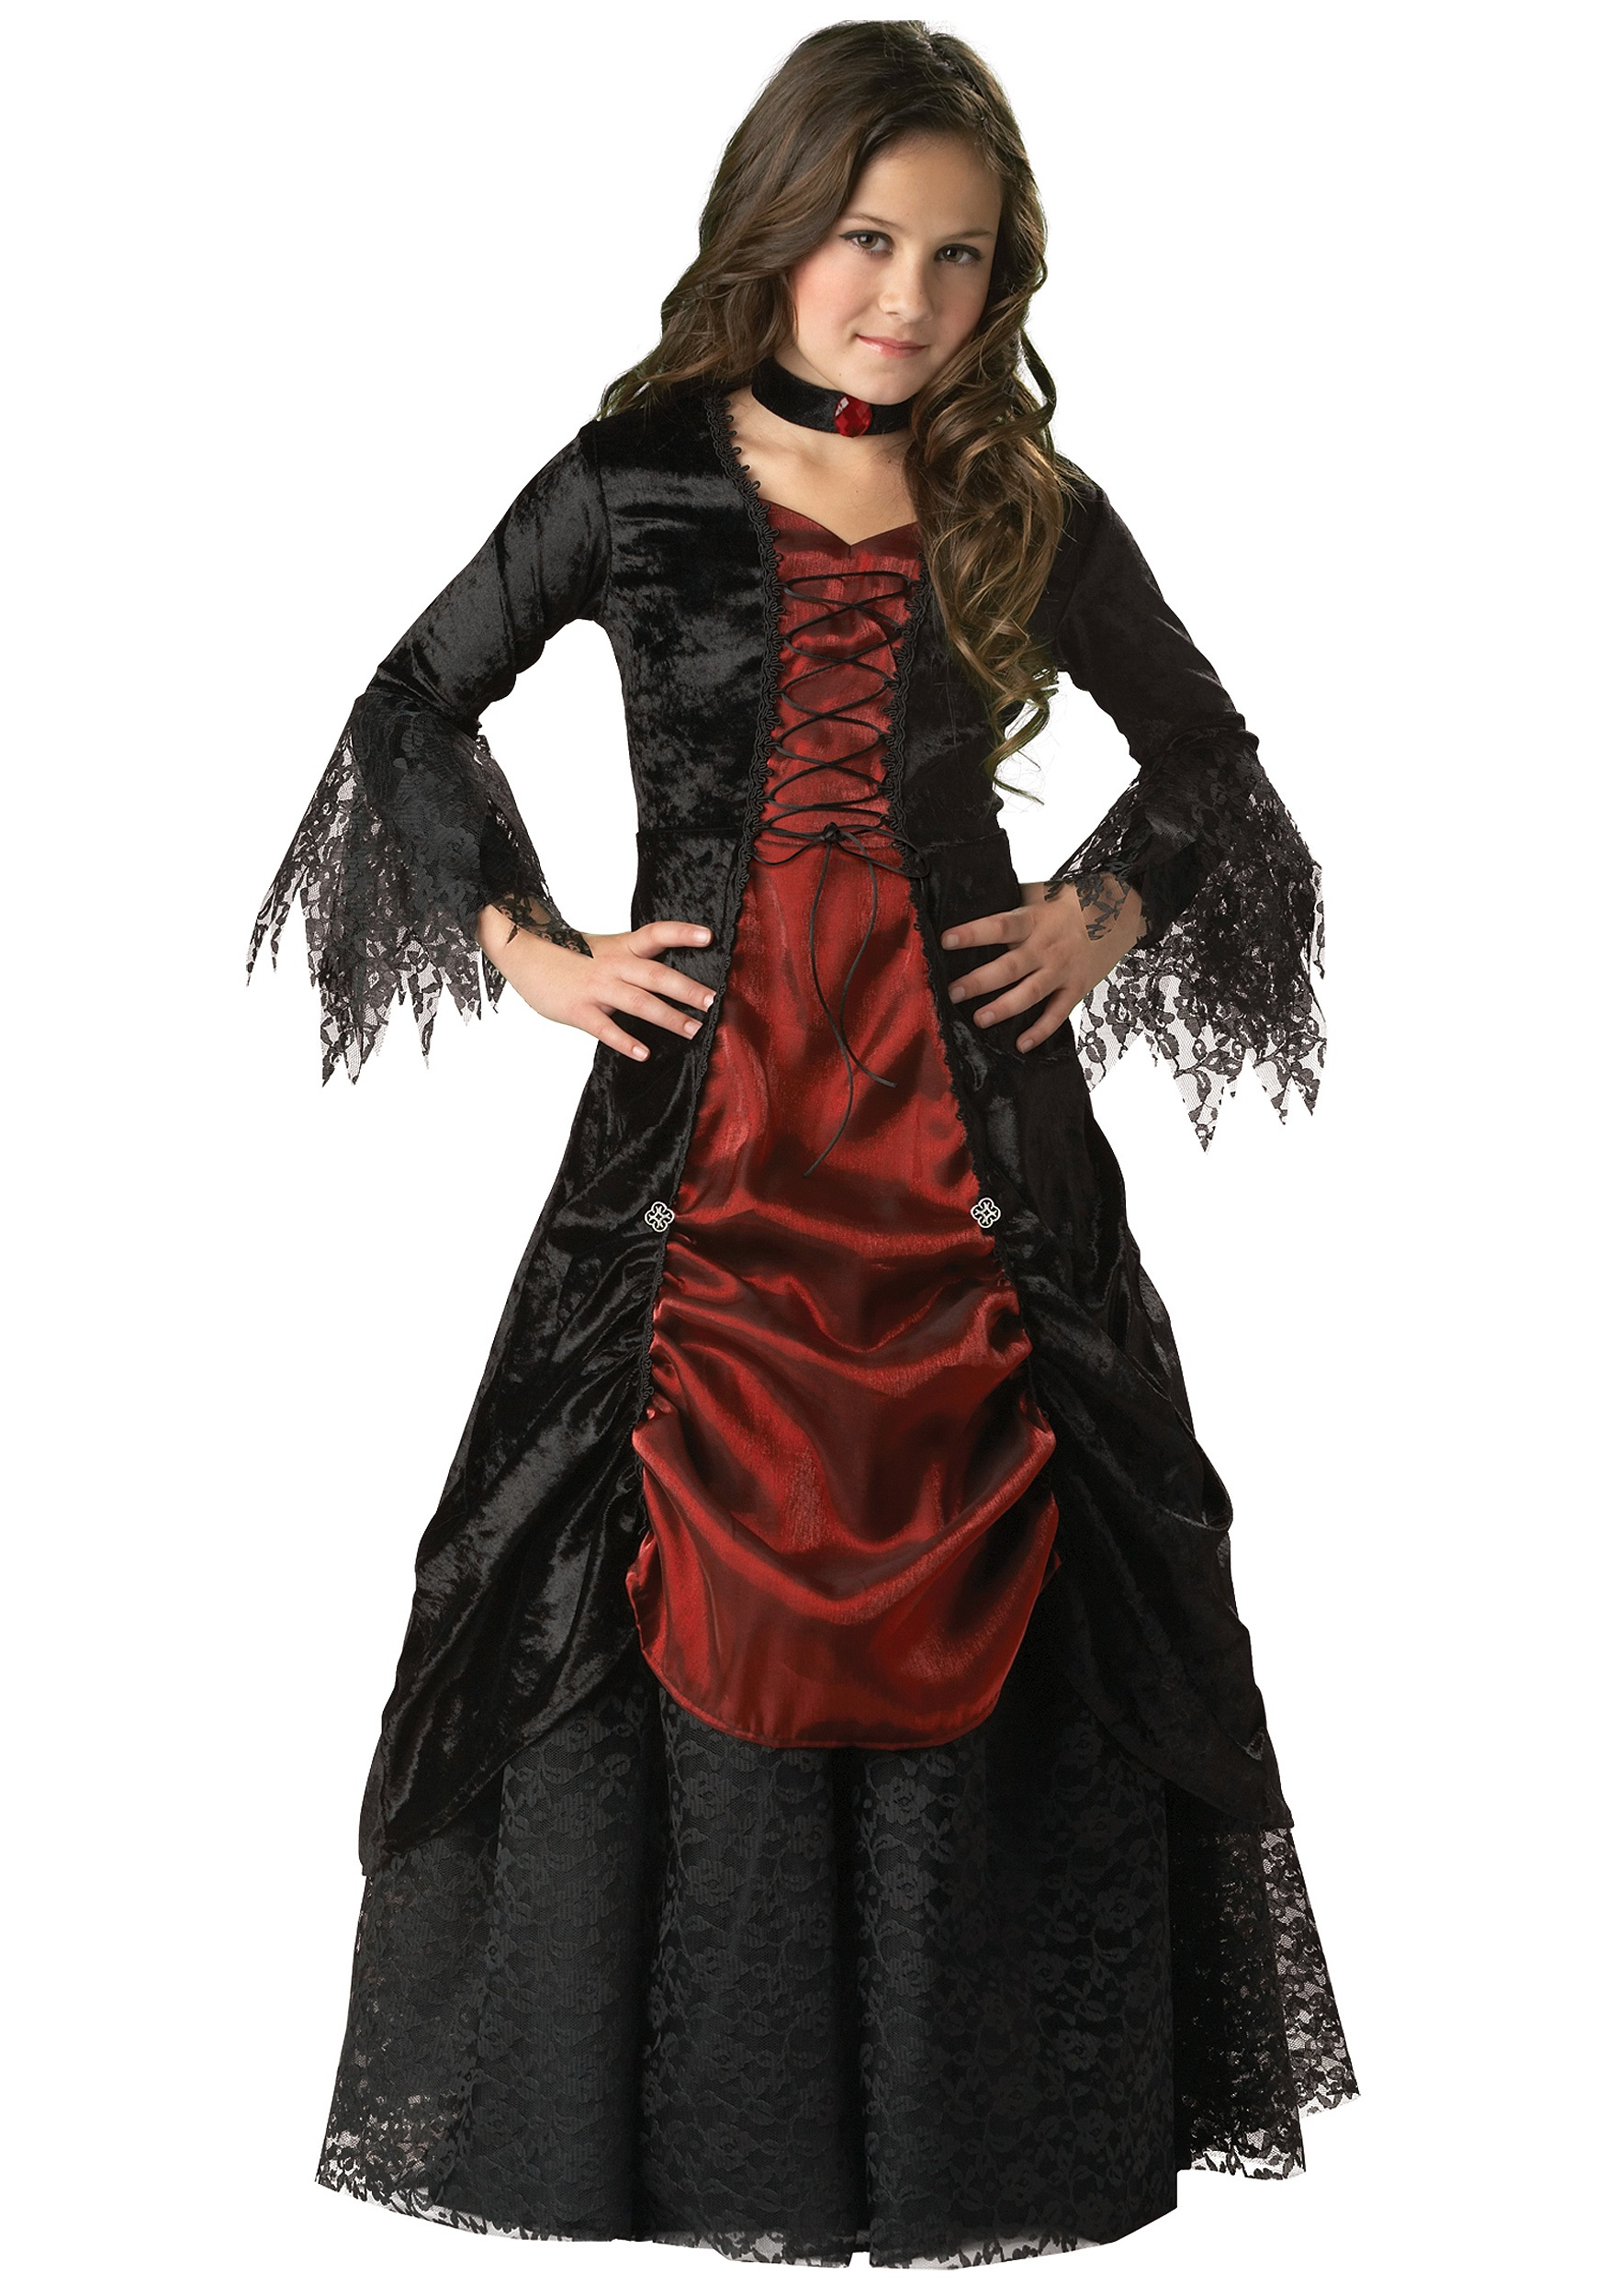 Female Vampire Costume Adult Halloween Fancy Dress